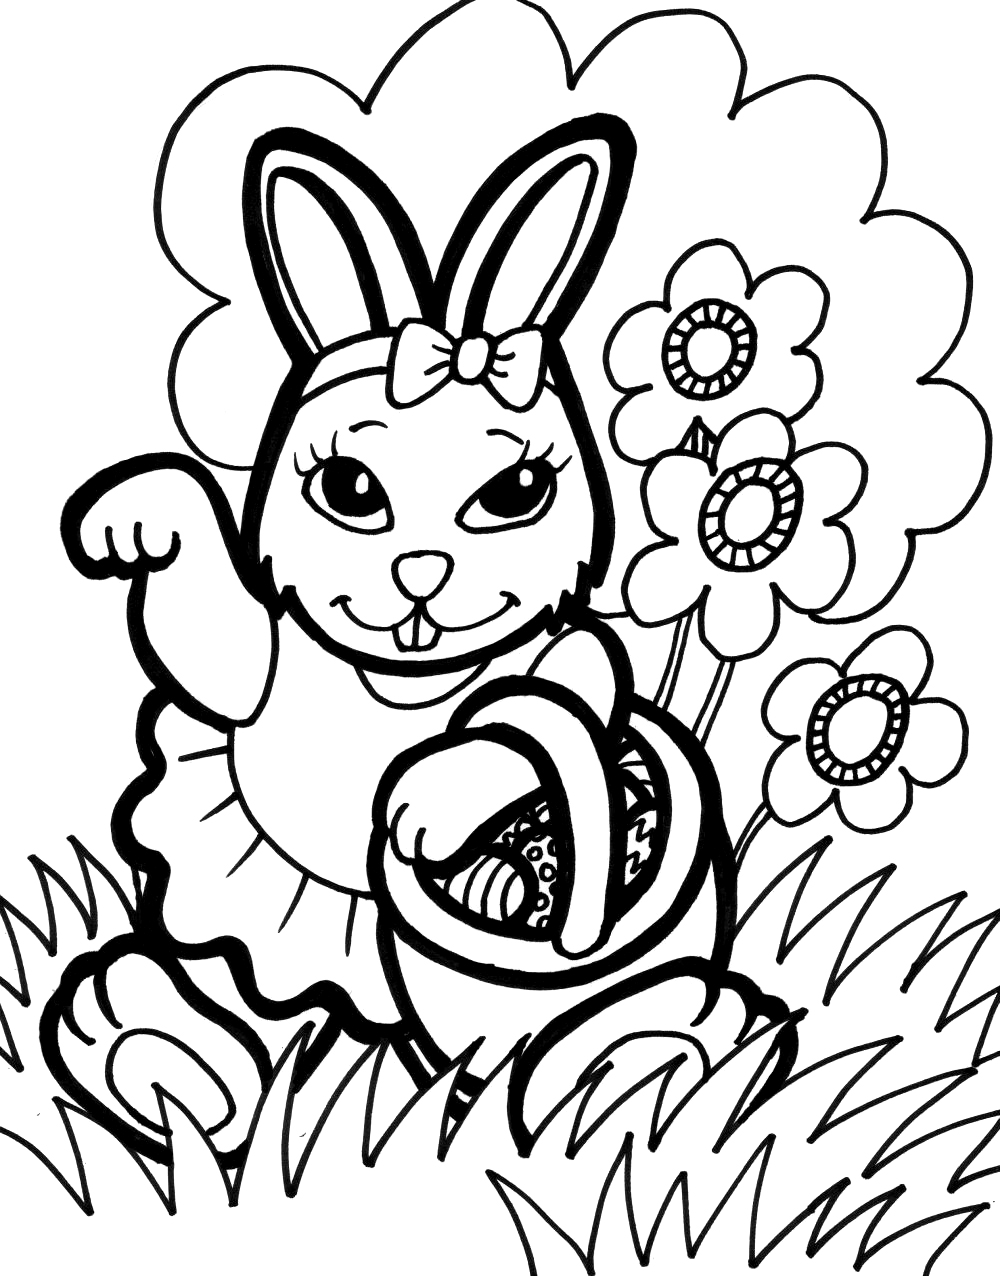 bunny color sheet rabbit to download for free rabbit kids coloring pages sheet bunny color